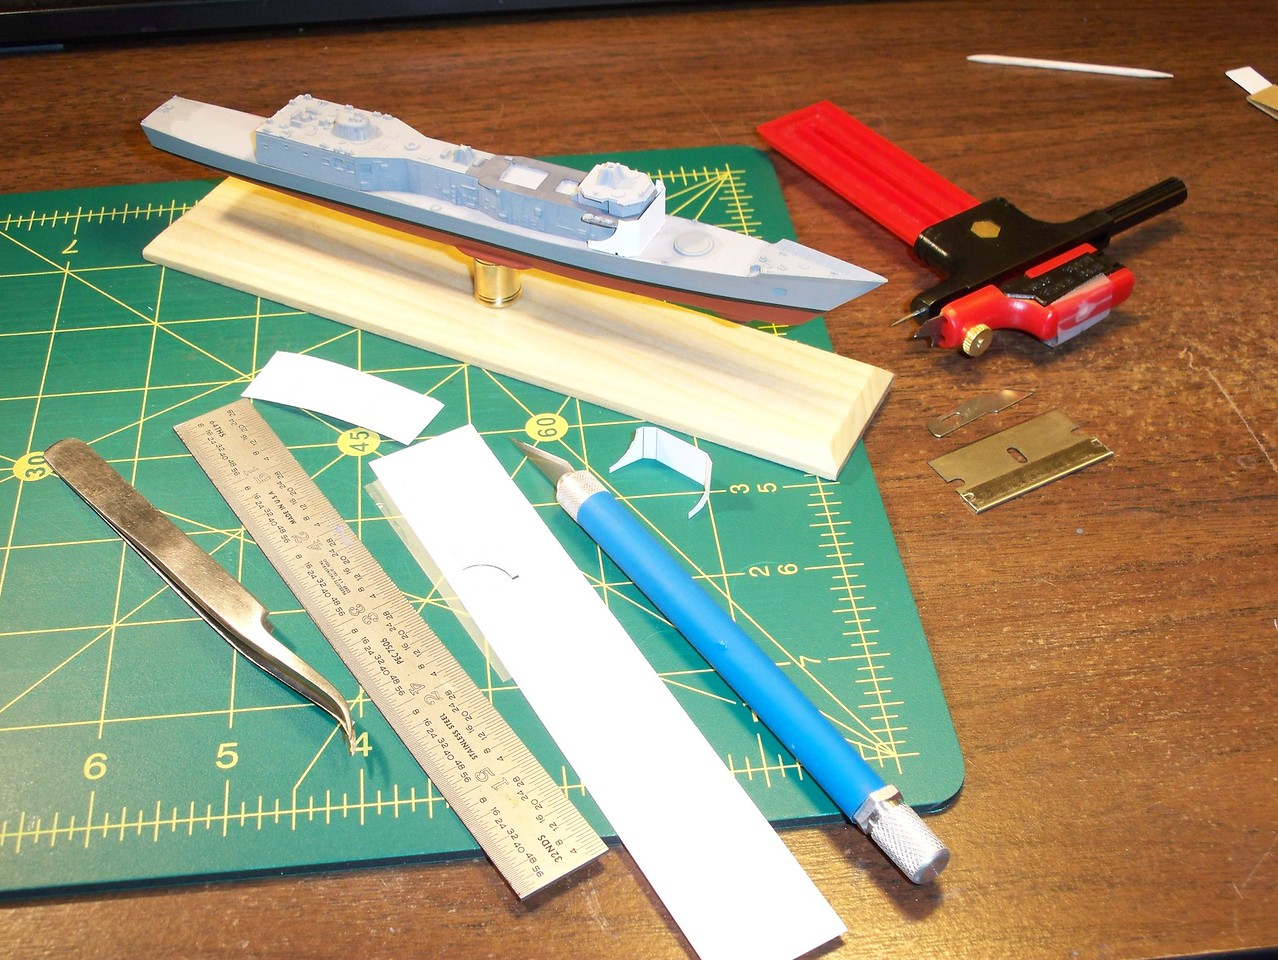 101018 FFG-7 hull paint complete; fwd deckhouse bulkhead replacement: Trial from paper, cardstock.